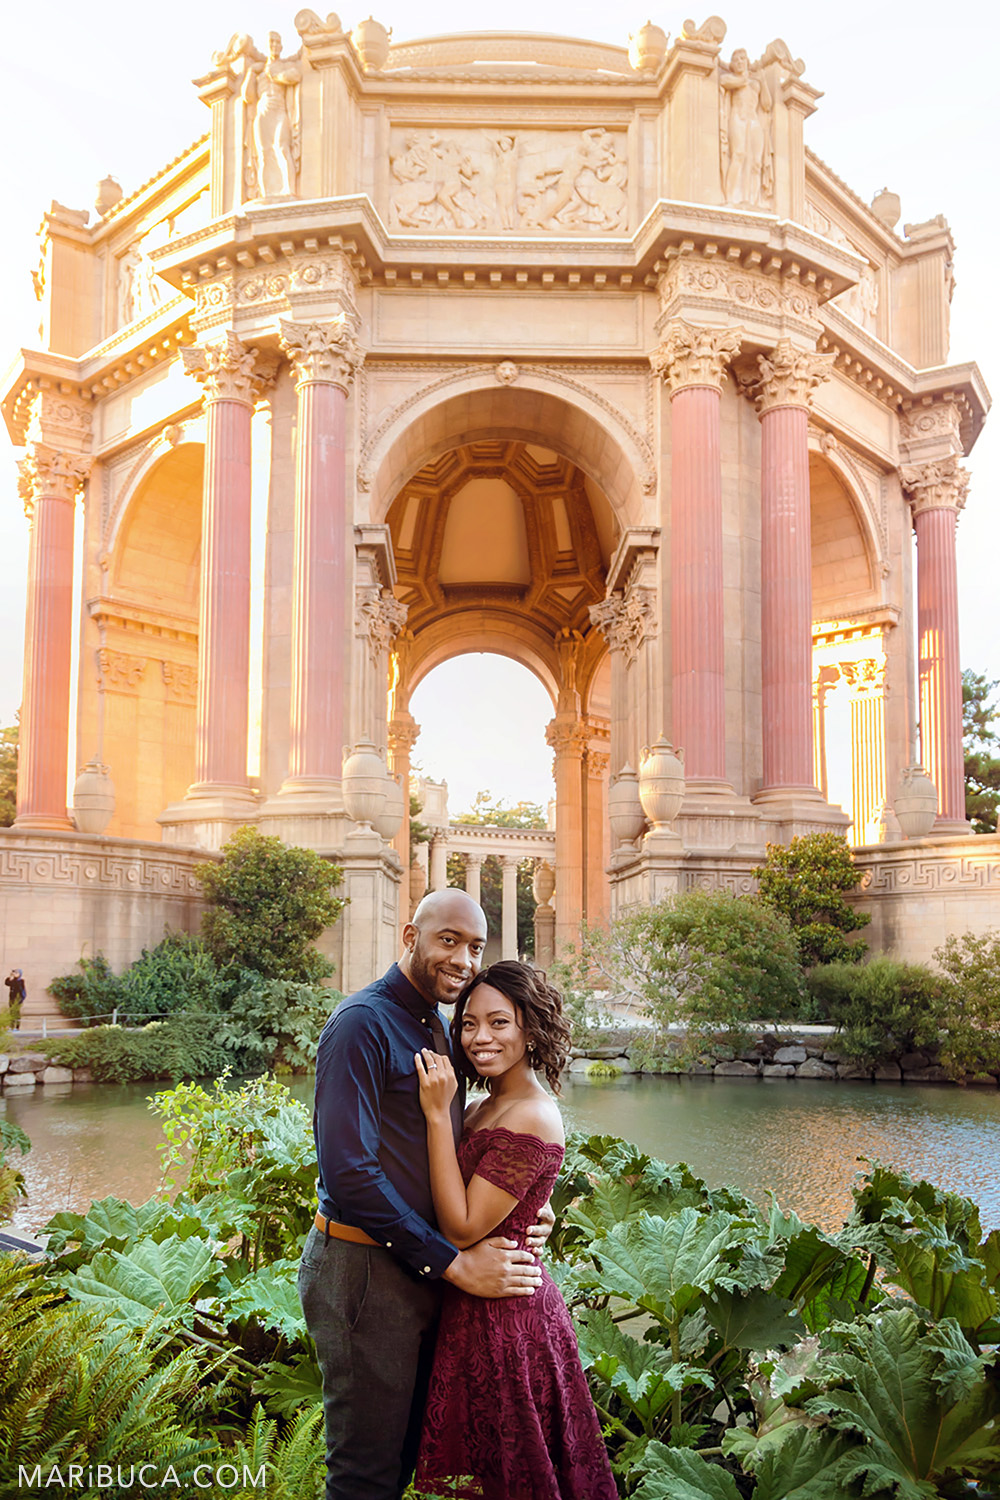 Lovely couple hug and smile in the Palace of Fine Art, San Francisco.